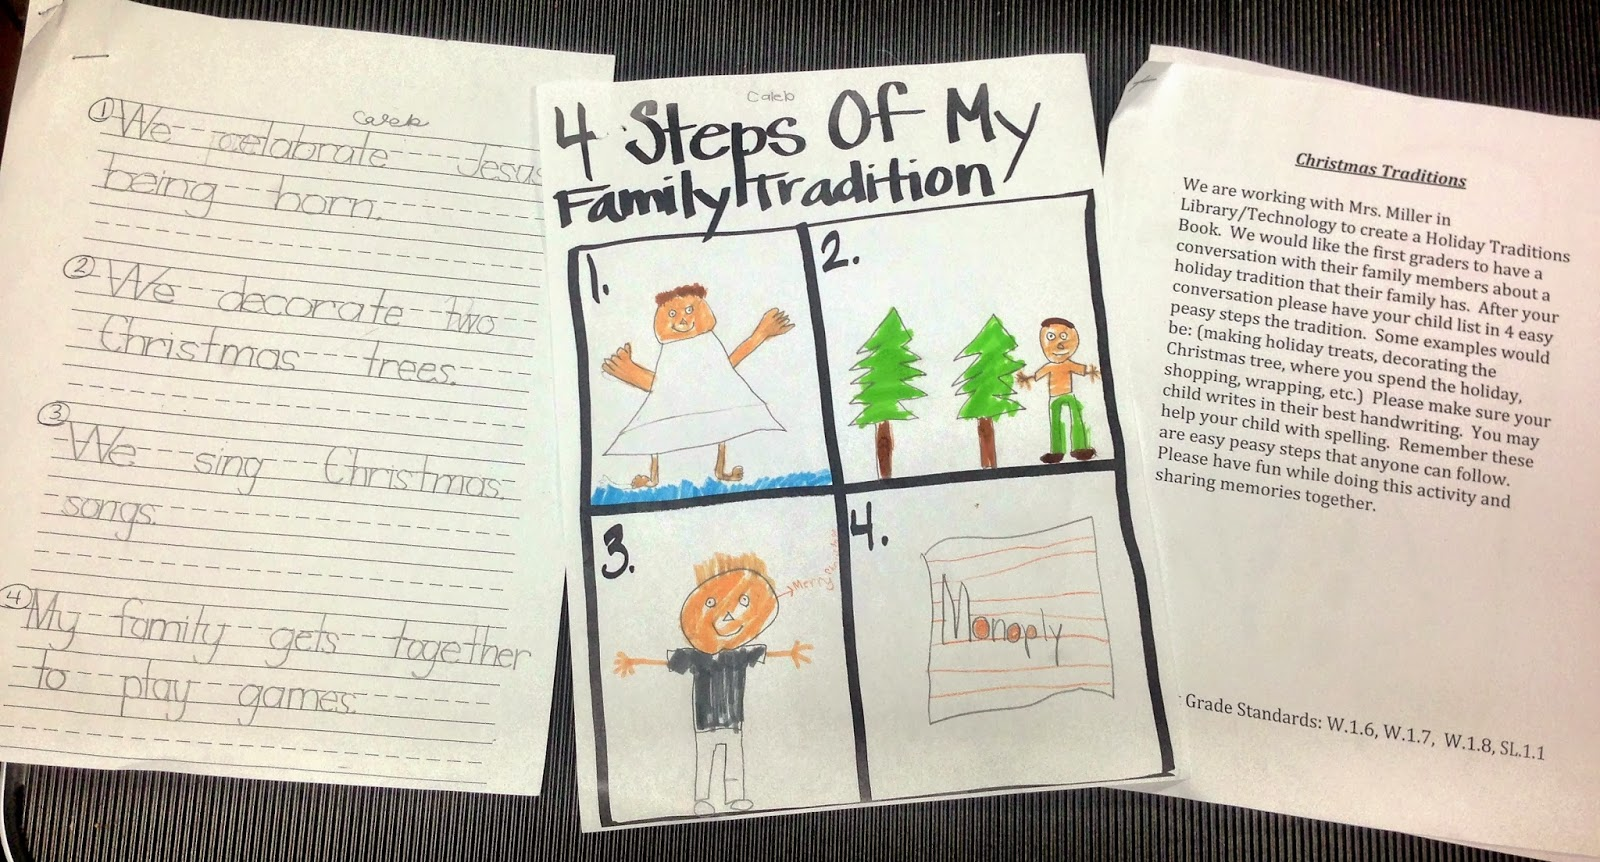 Science Essays Our First Graders Share Their Holiday Family Traditions With Writing  Drawing And Technology English Essays On Different Topics also Politics And The English Language Essay The Library Voice Our First Graders Share Their Holiday Family  Essay Writings In English